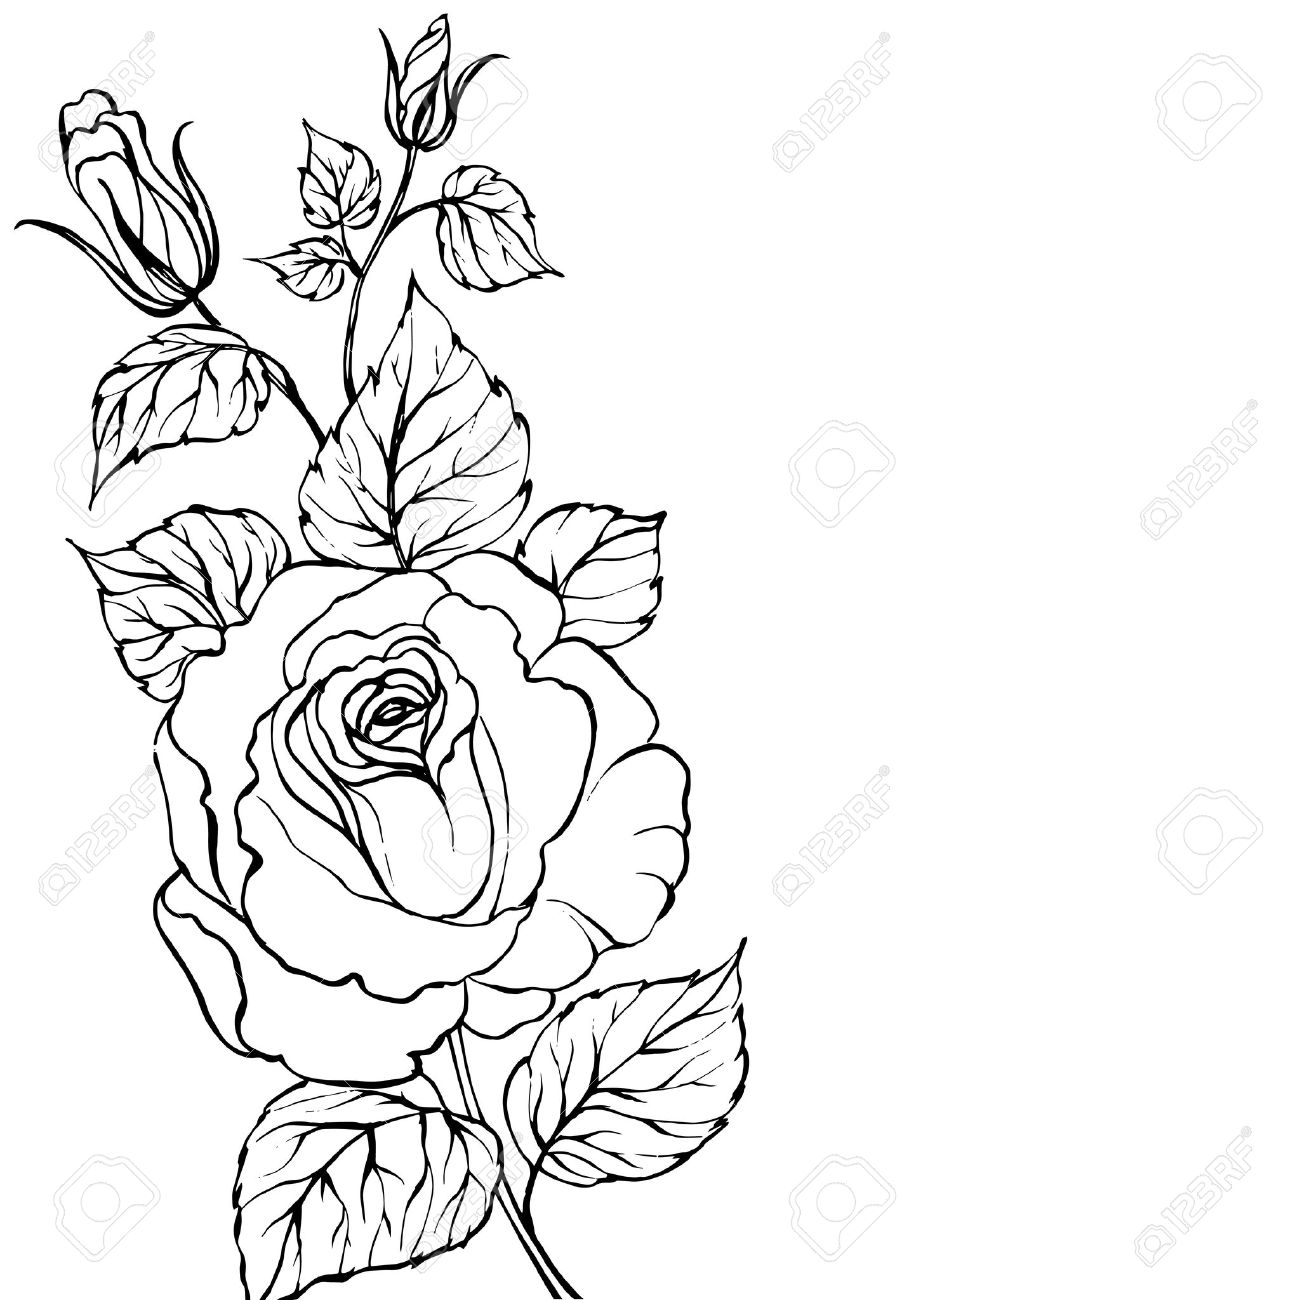 Simple Rose Tattoo Outline: Simple Rose Line Drawing At GetDrawings.com